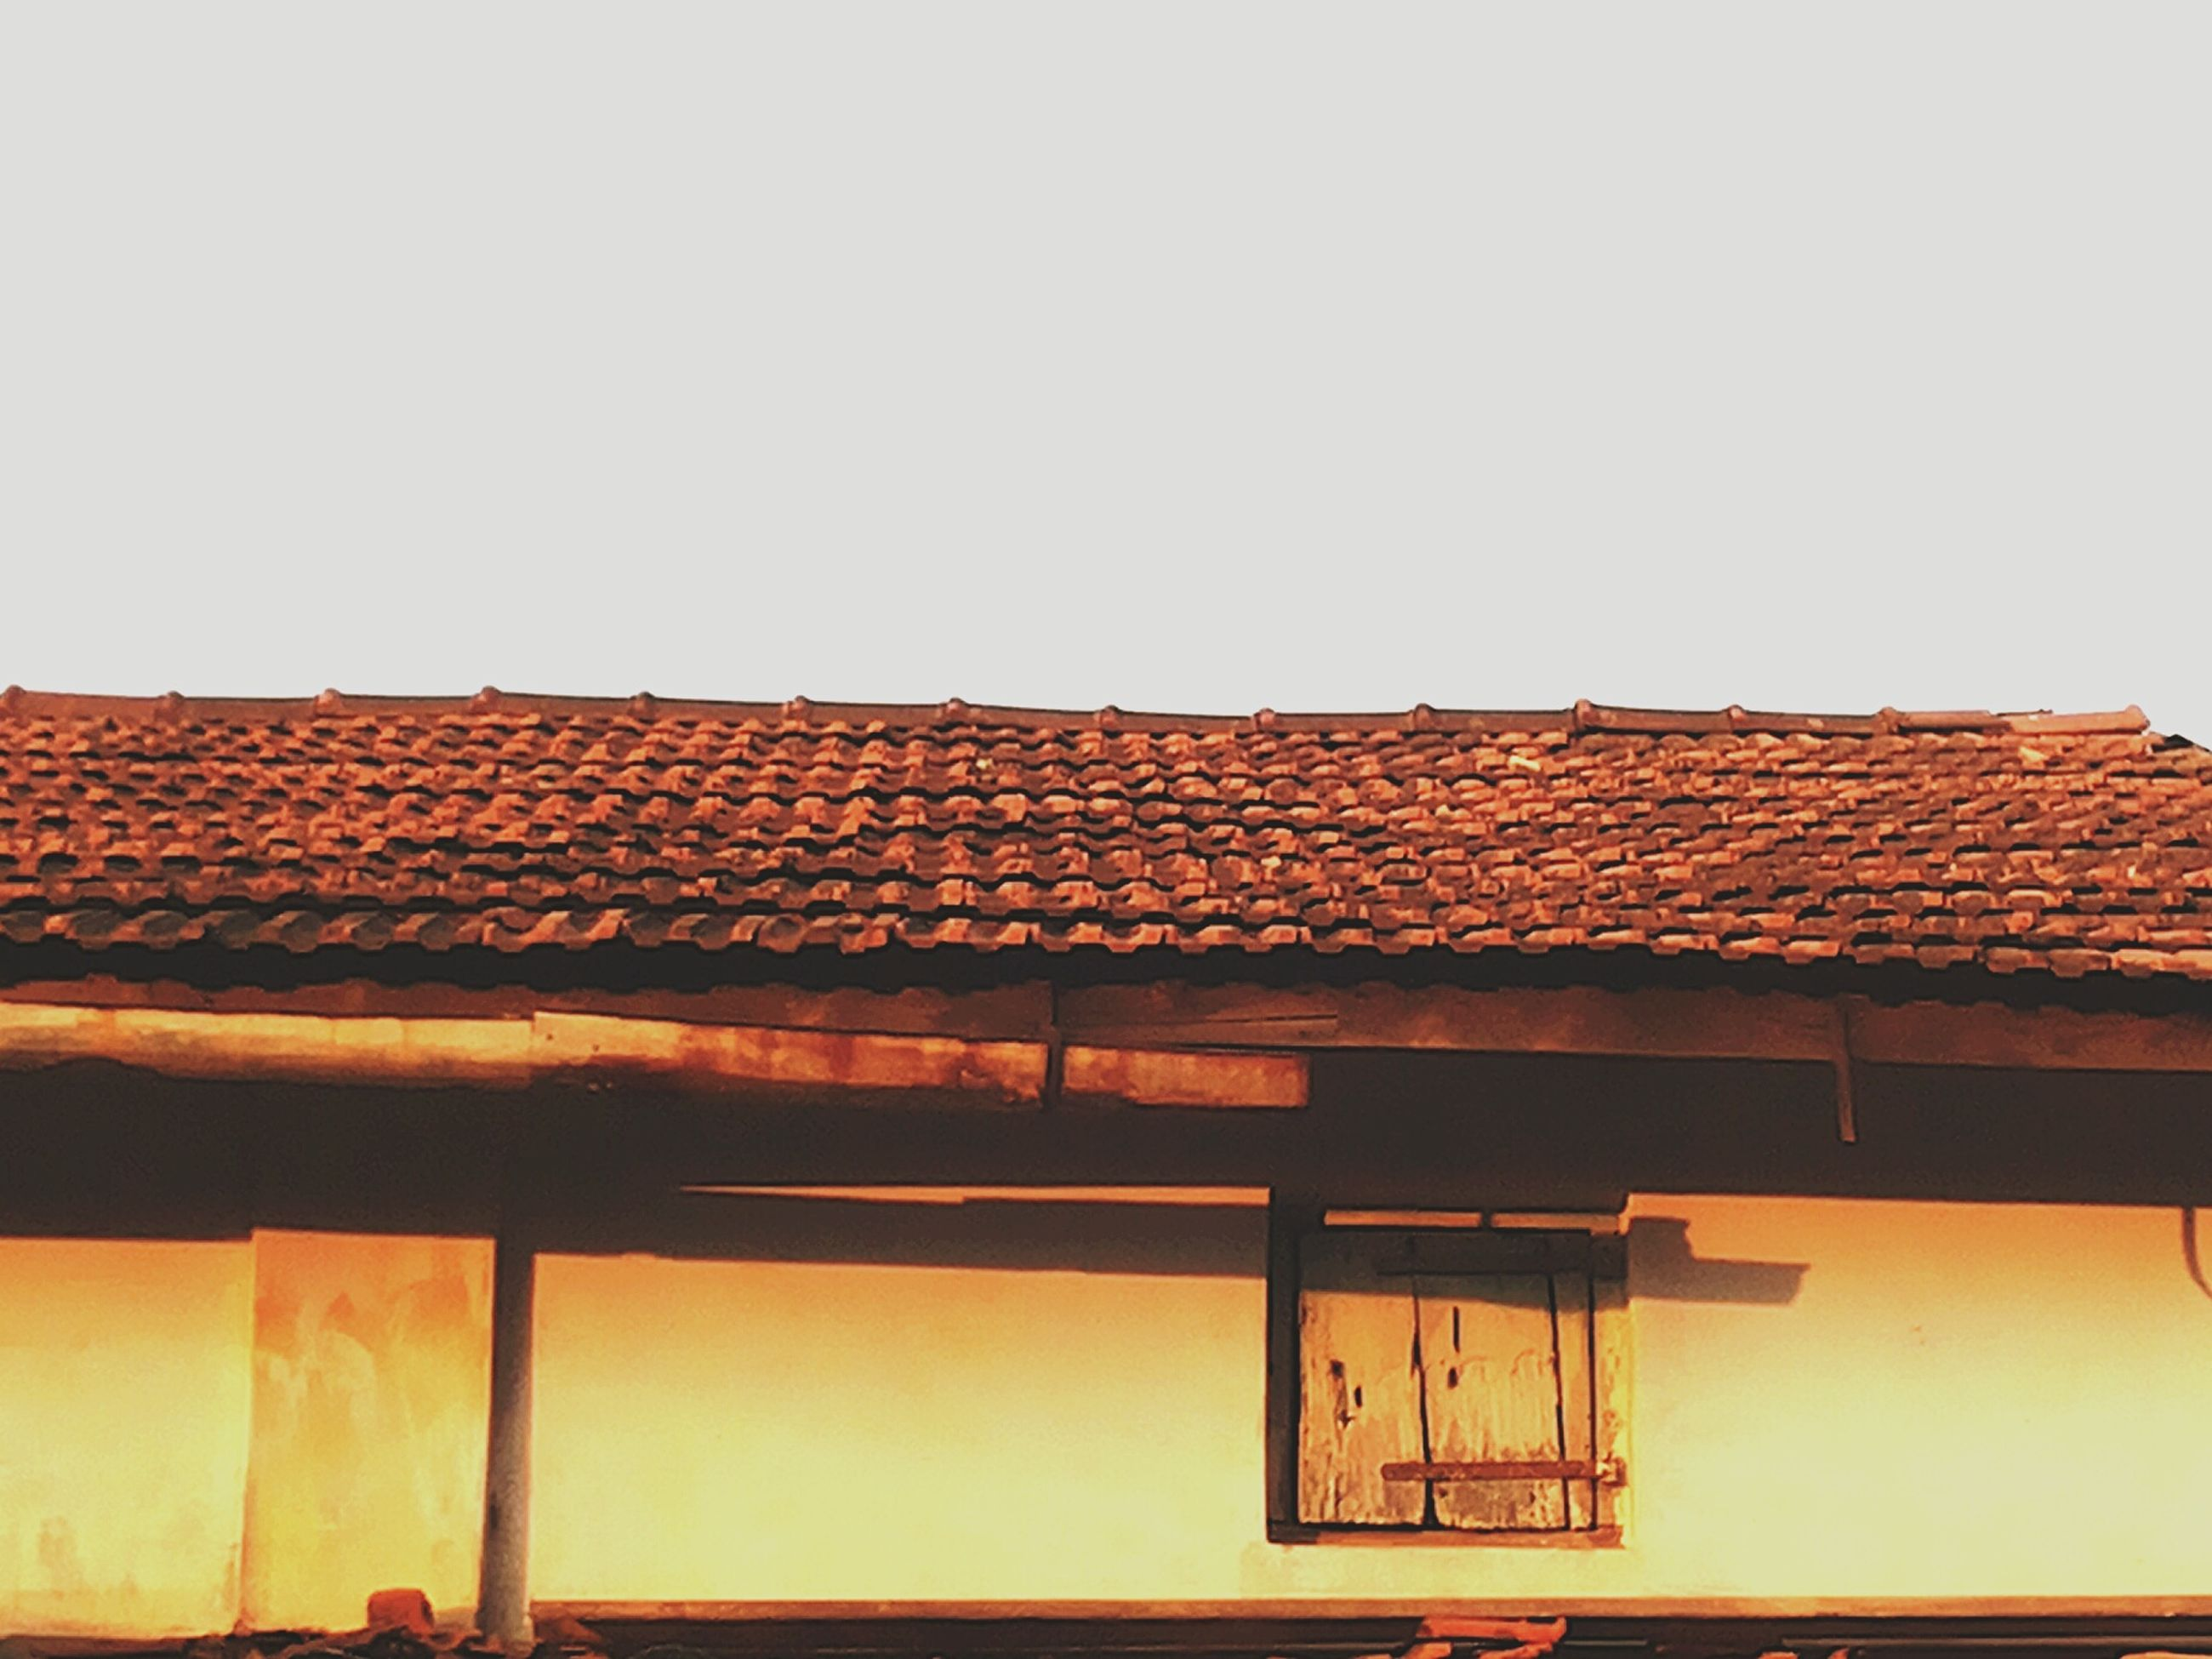 architecture, building exterior, built structure, clear sky, roof, house, copy space, residential structure, residential building, low angle view, window, building, high section, exterior, outdoors, roof tile, day, balcony, no people, sky